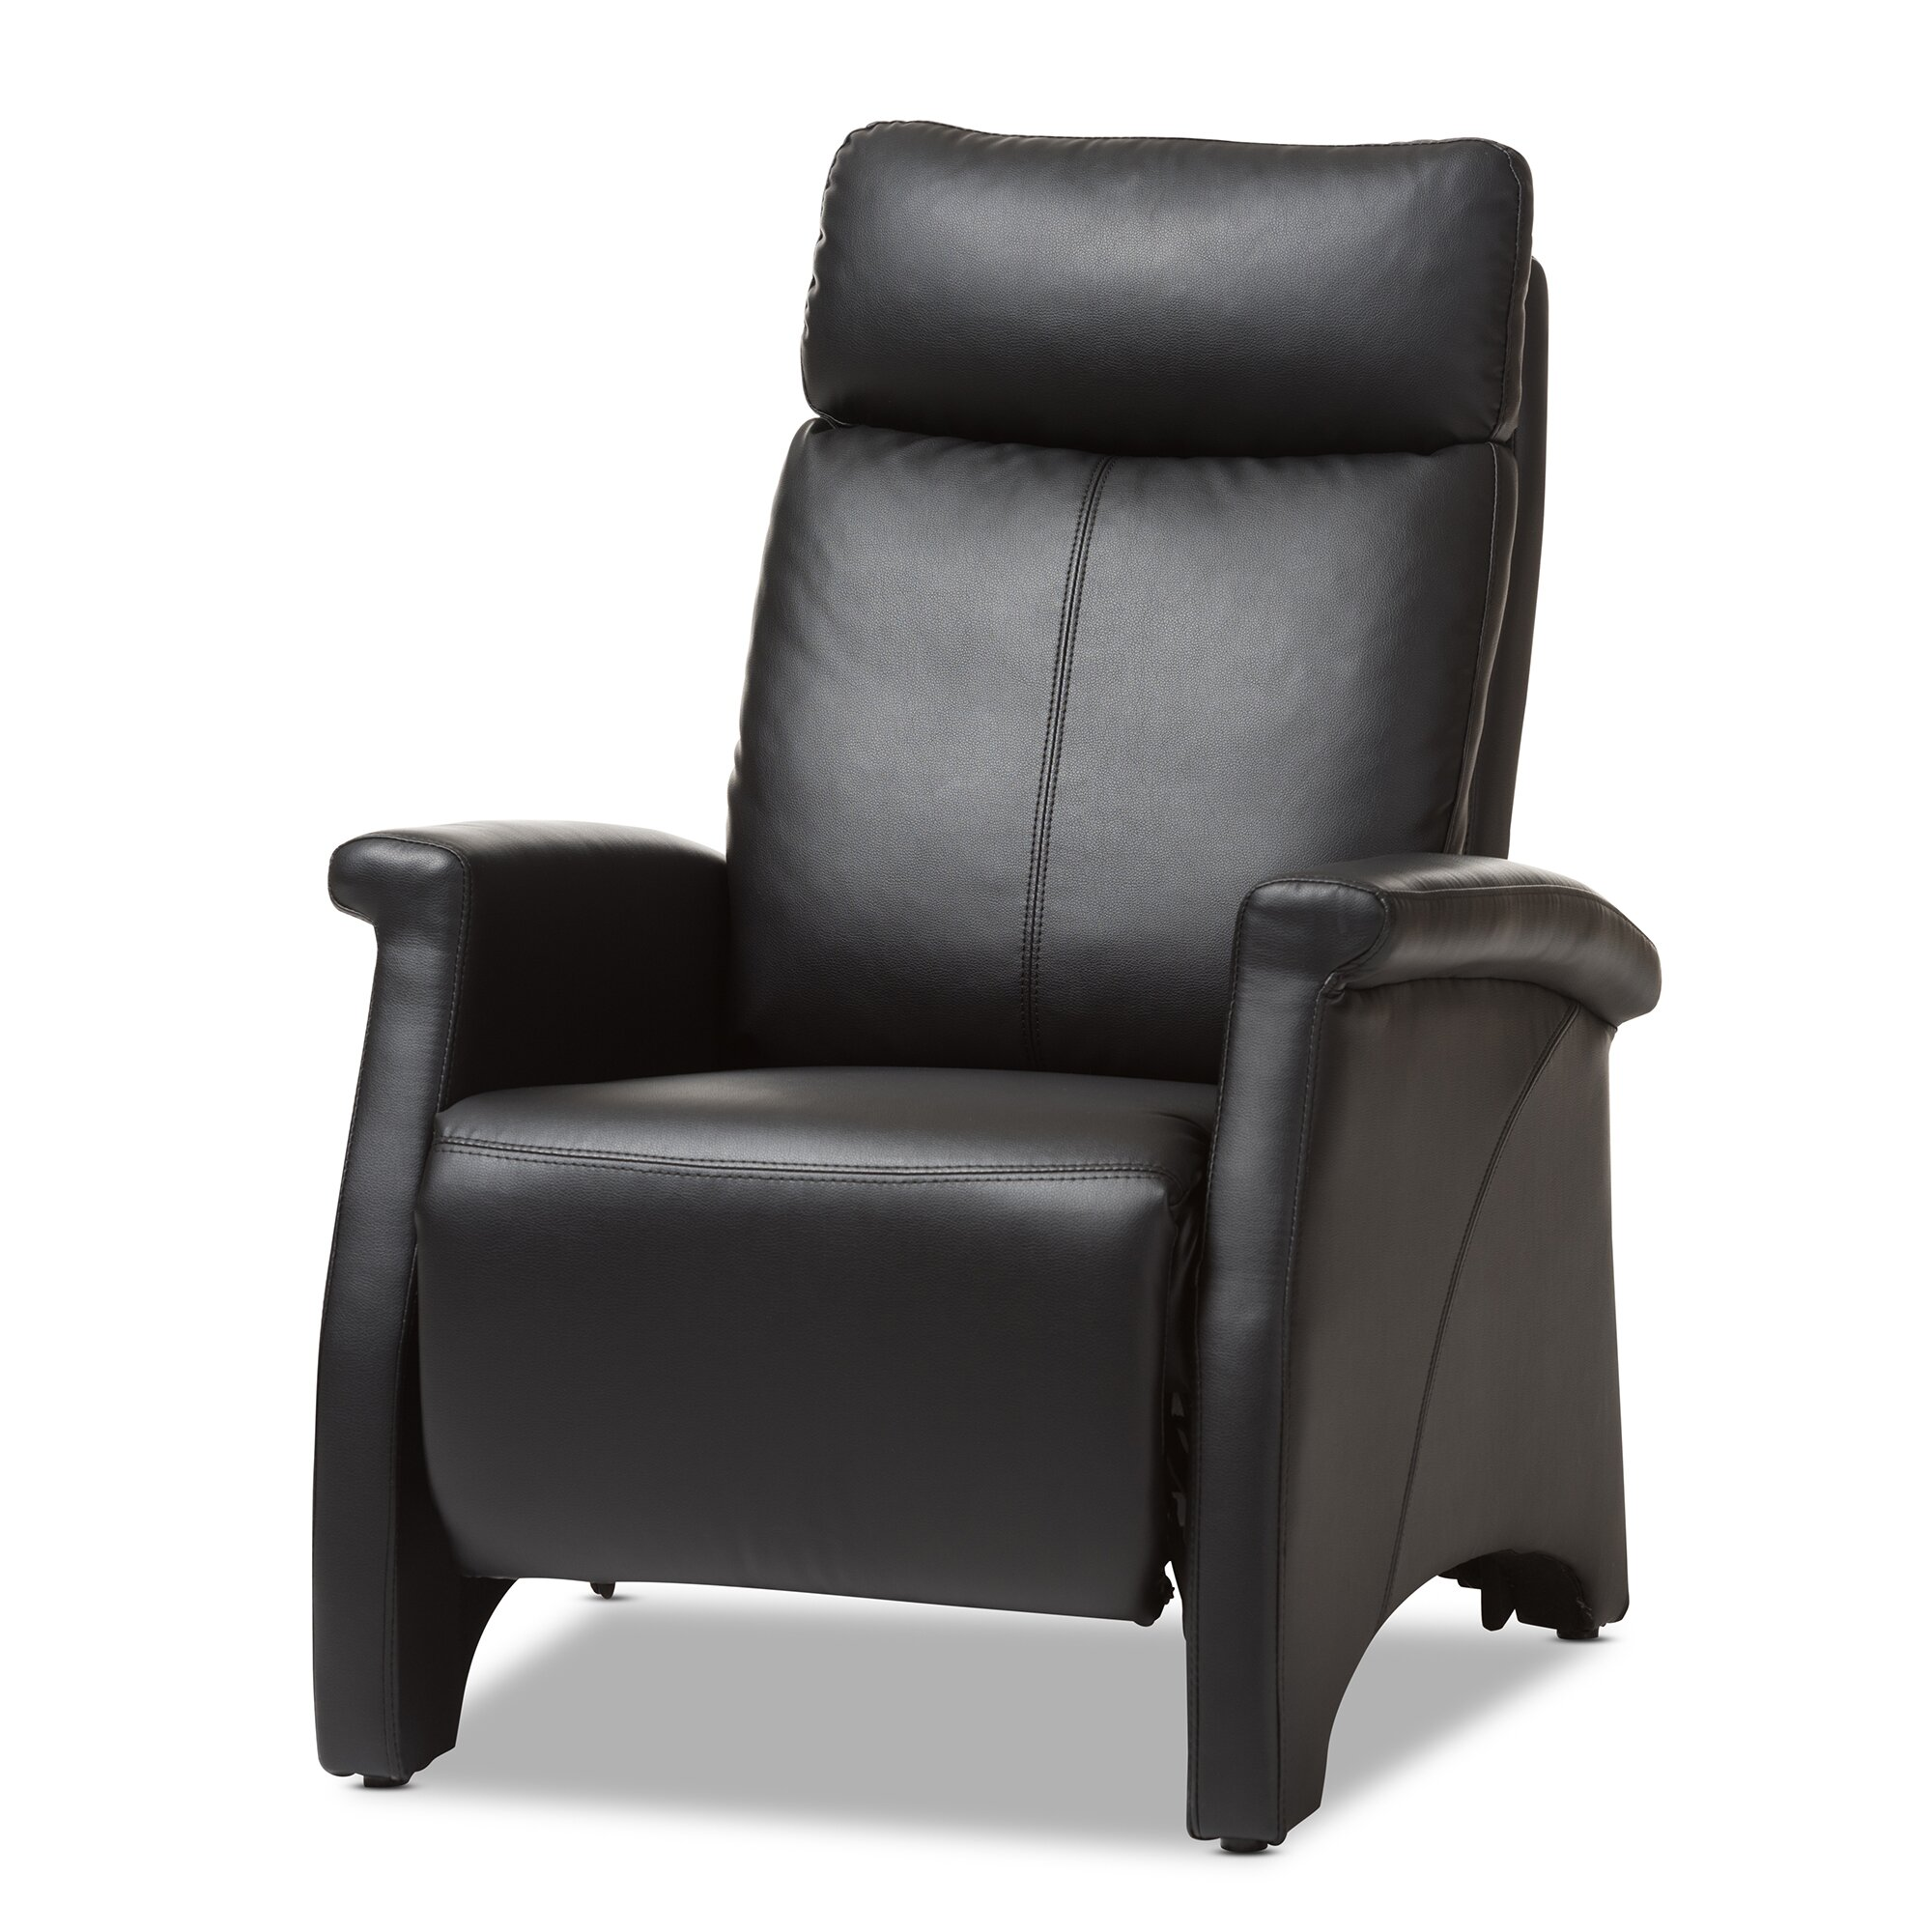 Club chair recliner - Flemingdon Club Recliner